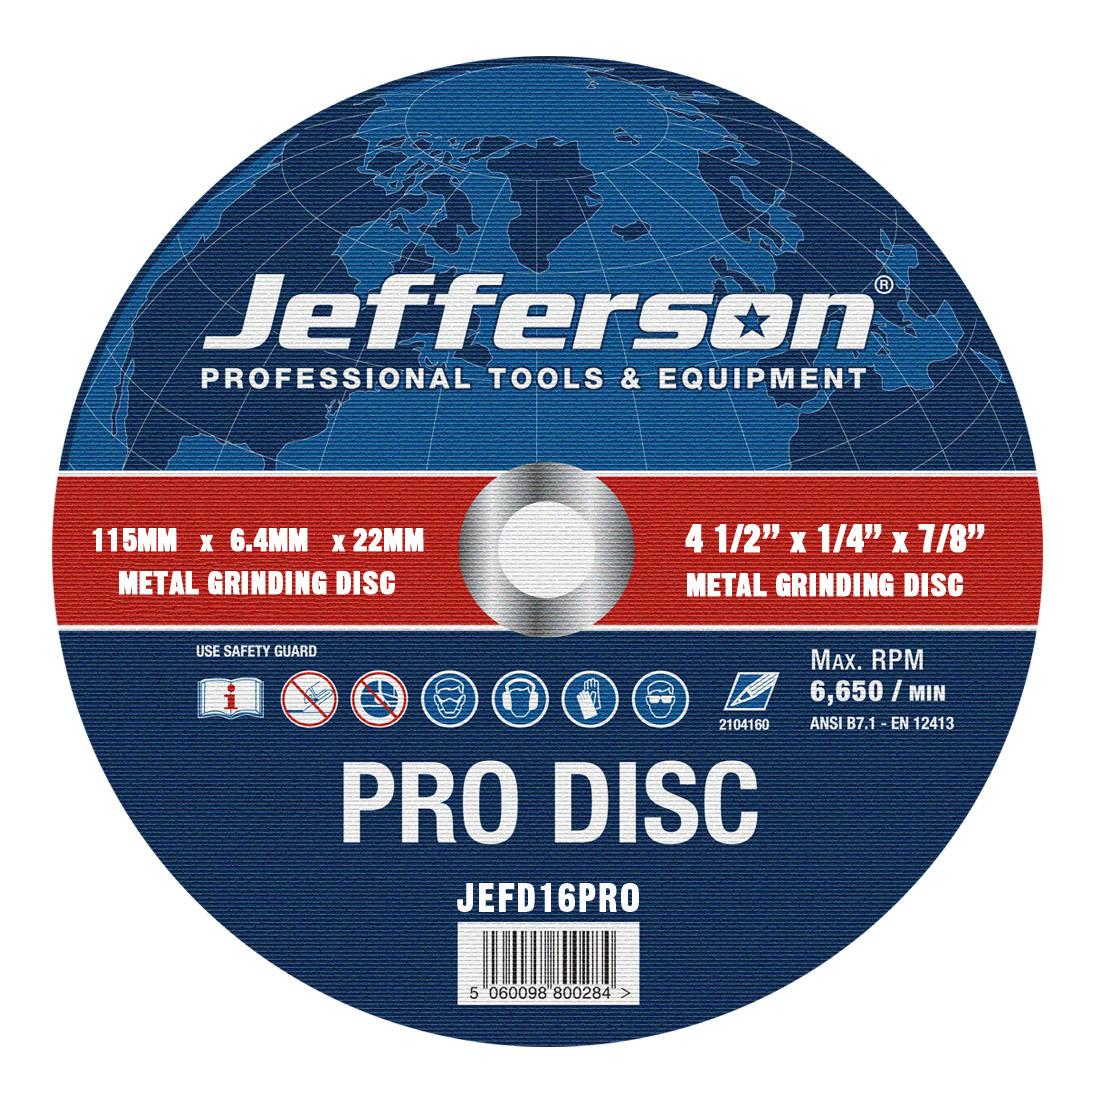 "4.5"" Metal Grinding Abrasive Disc 22mm Bore Jefd16pro"